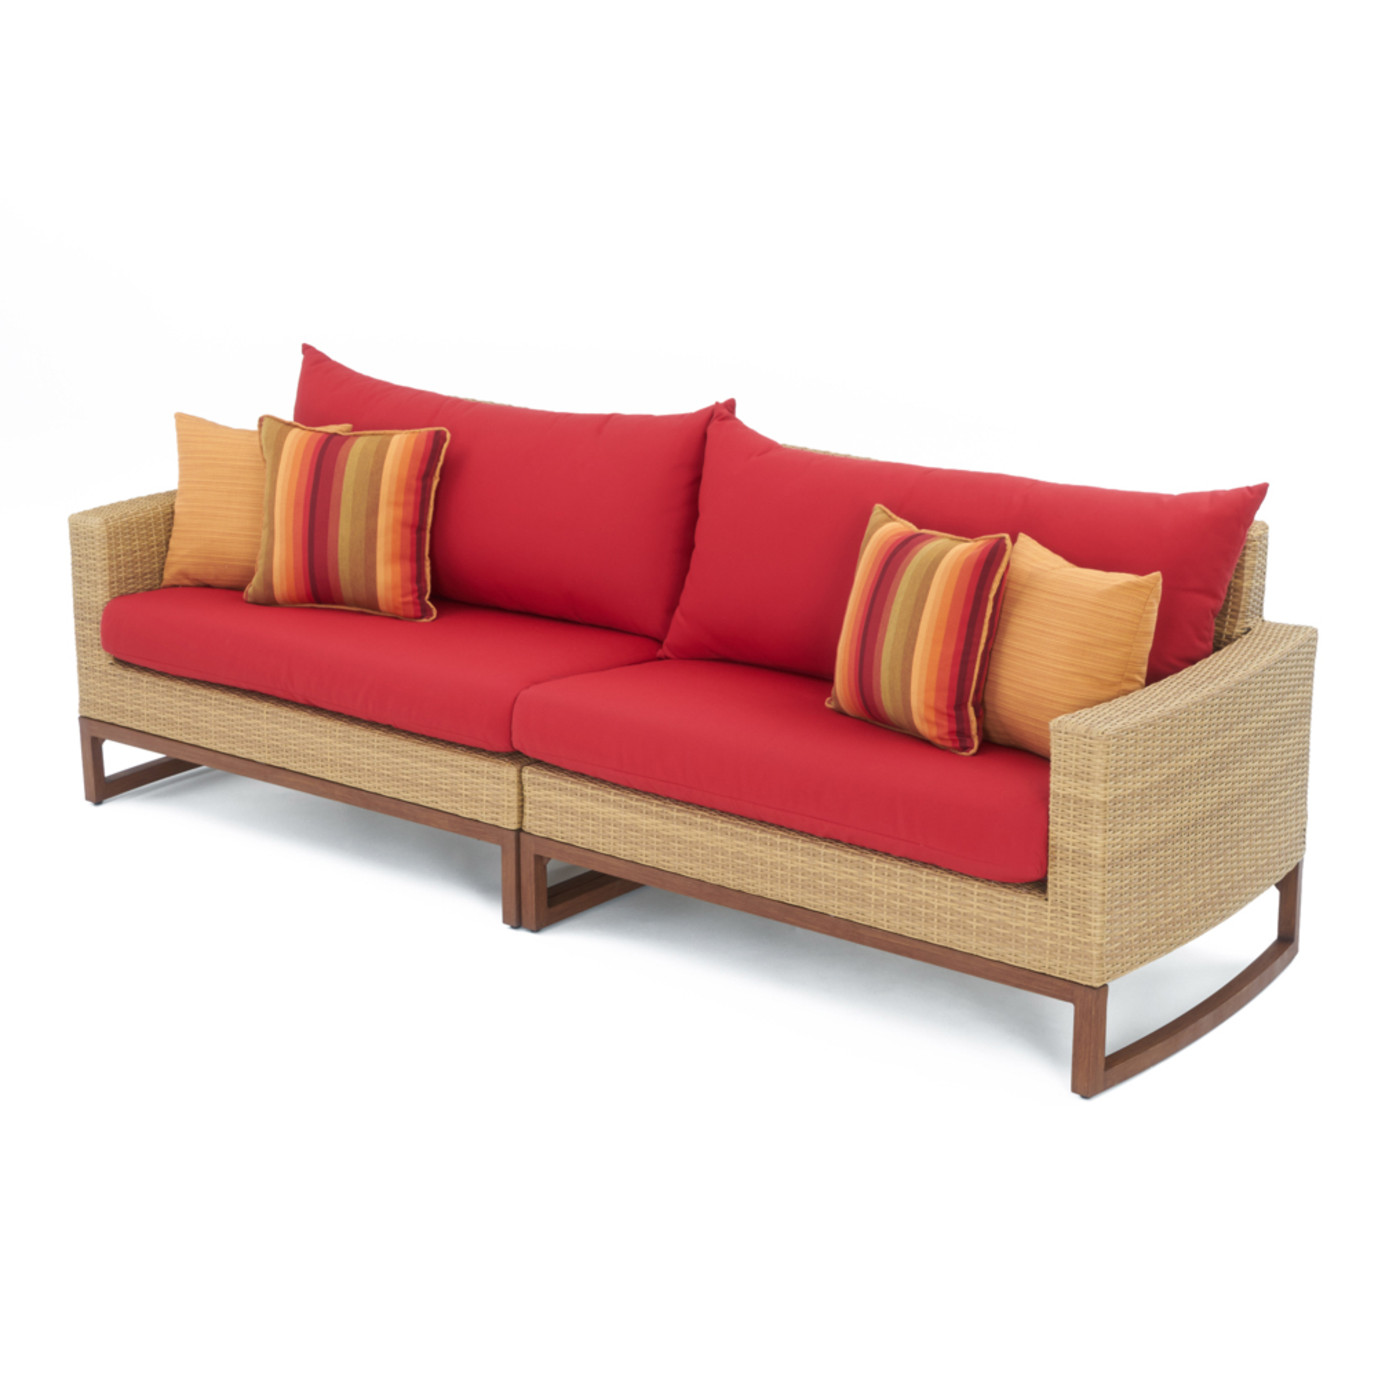 Mili™ 6pc Sofa Sectional - Sunset Red